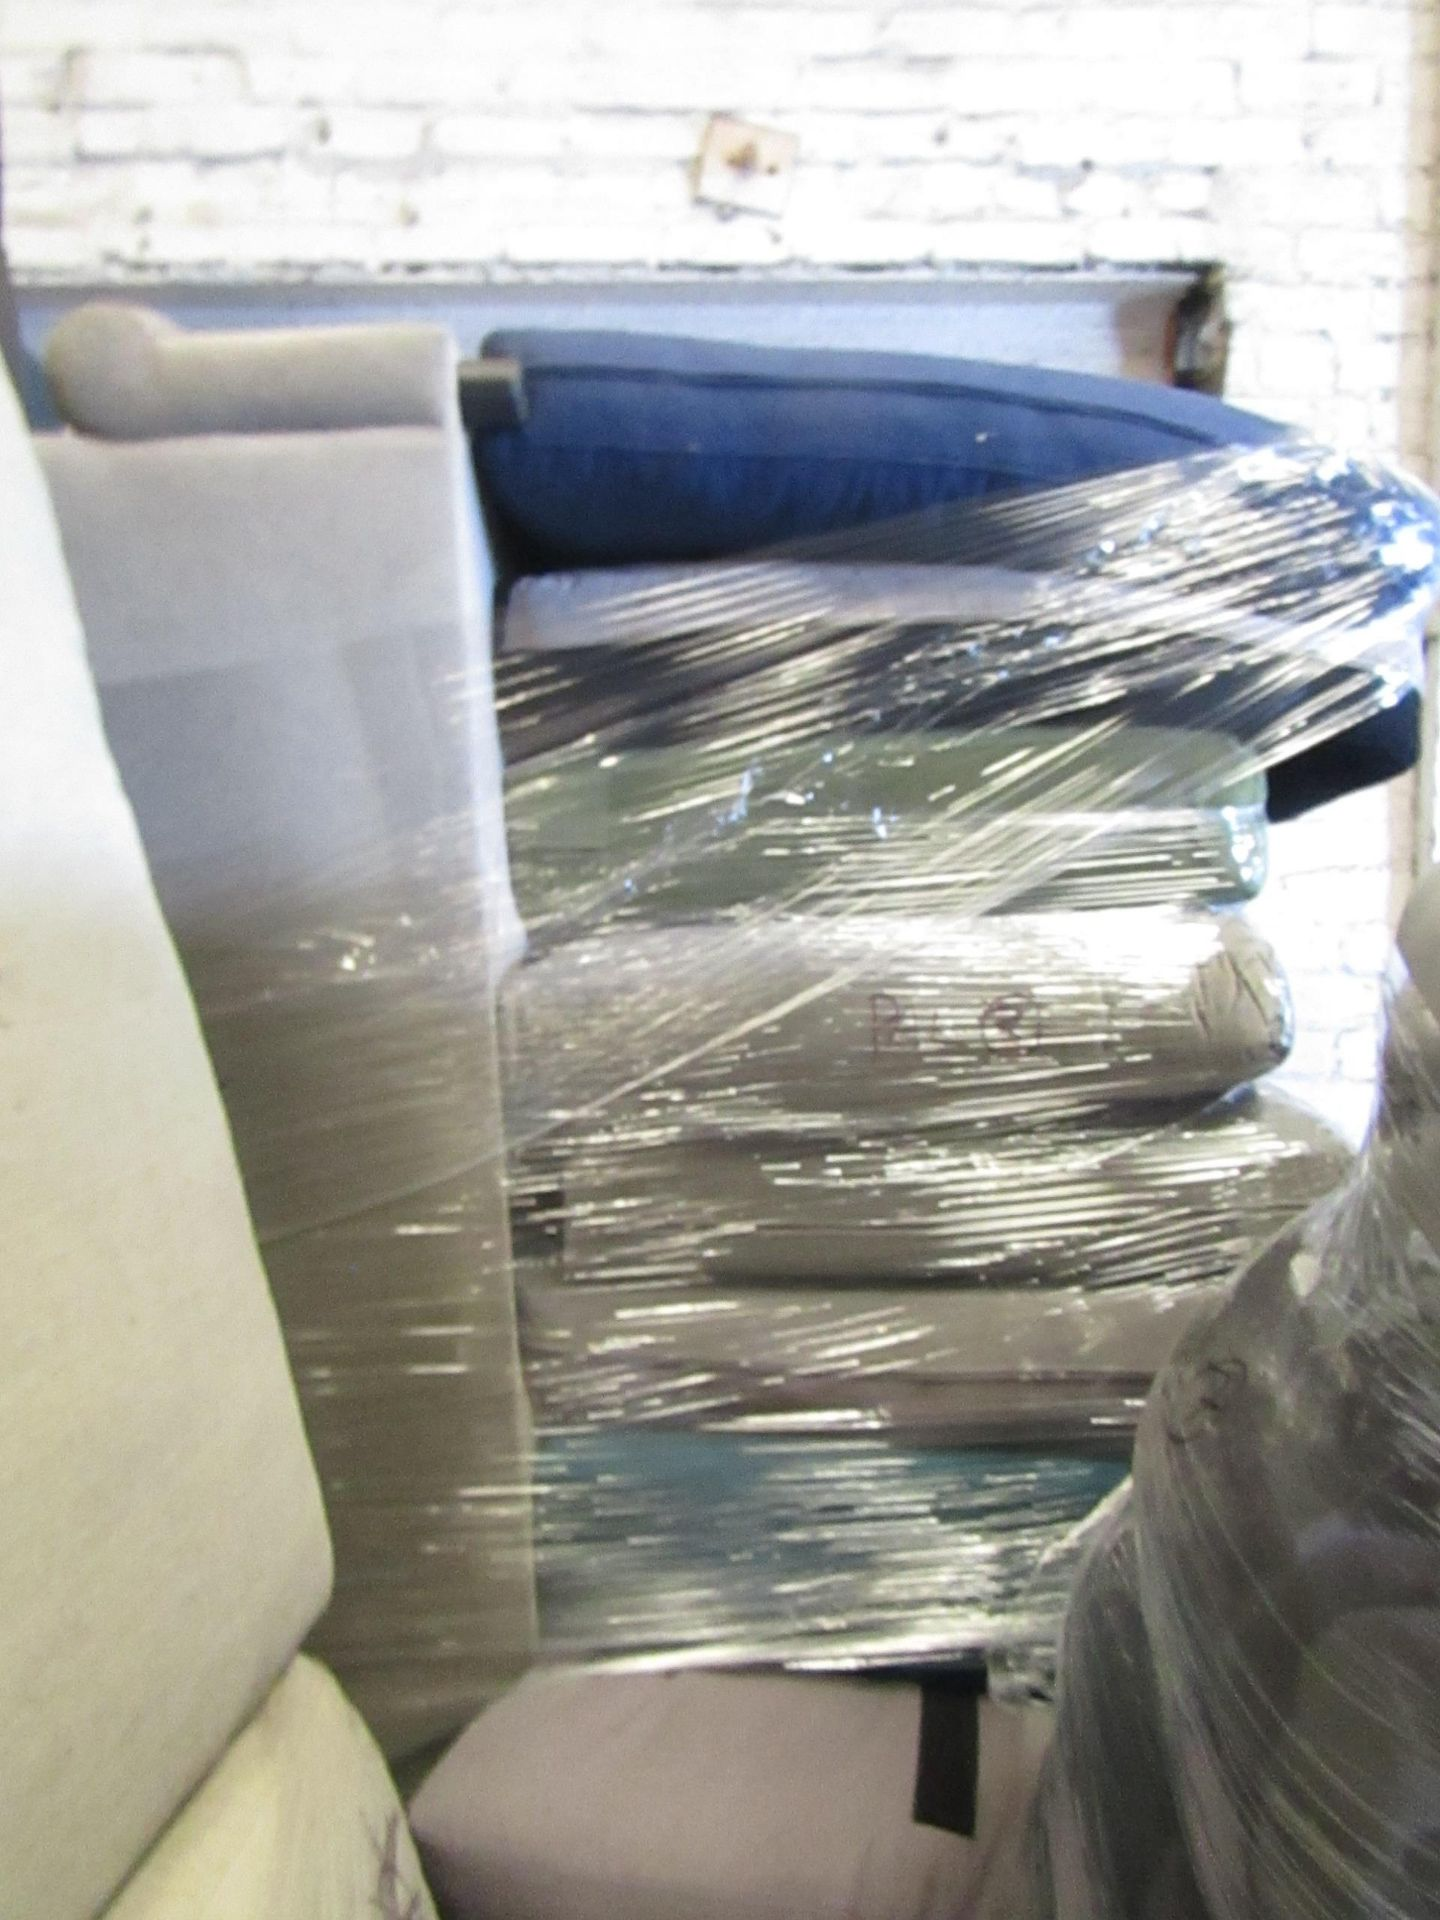 | 13X | PALLETS OF SWOON BER SOFAS, THESE ARE CUSTOMER RETURNS SO COULD HAVE MINOR DAMAGE, MAJOR - Image 11 of 11